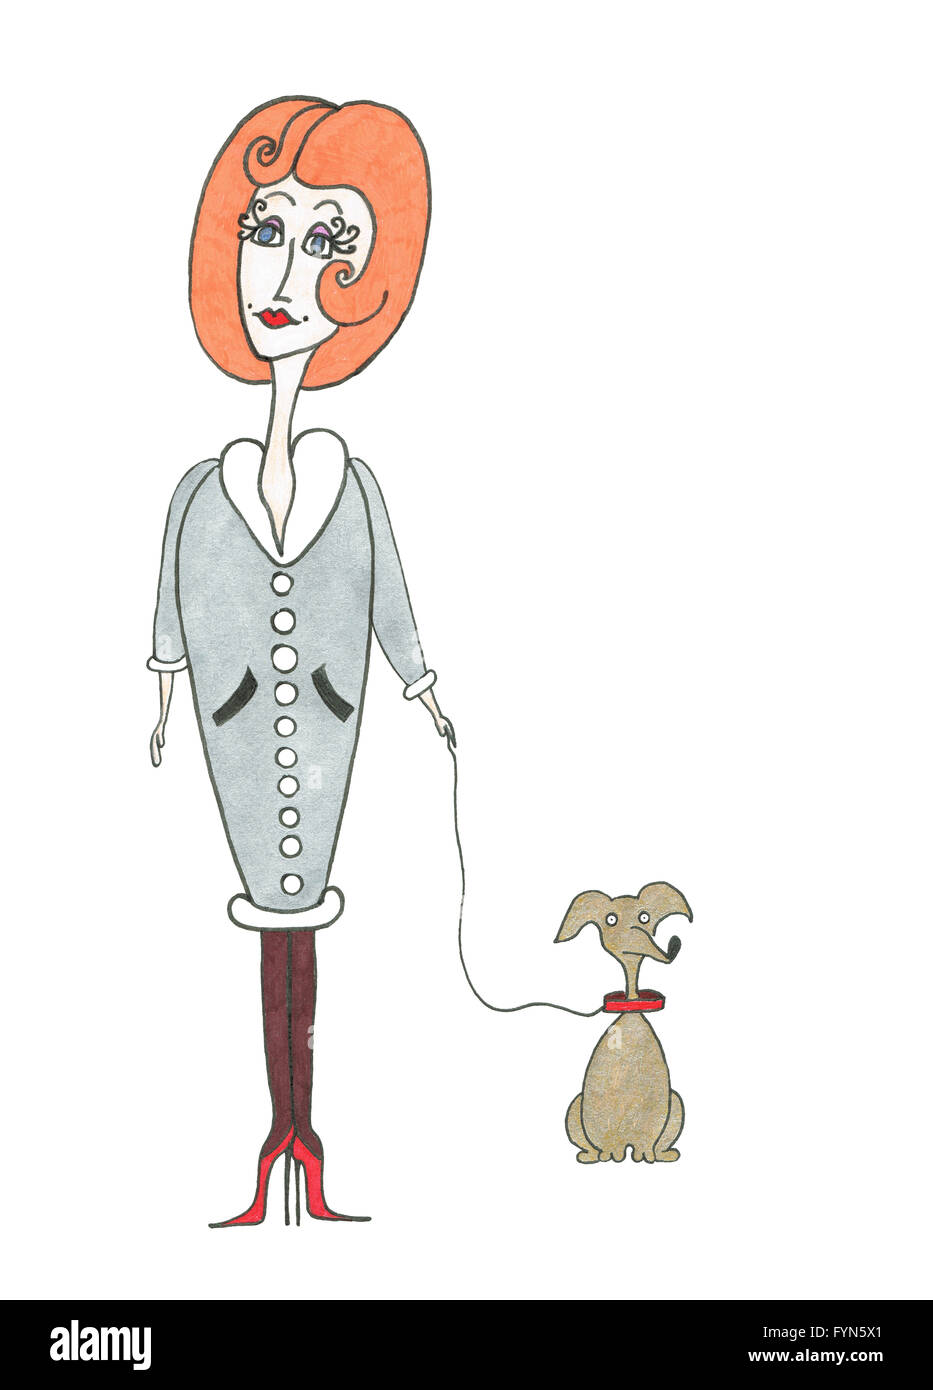 Lady with a dog. Illustration. - Stock Image